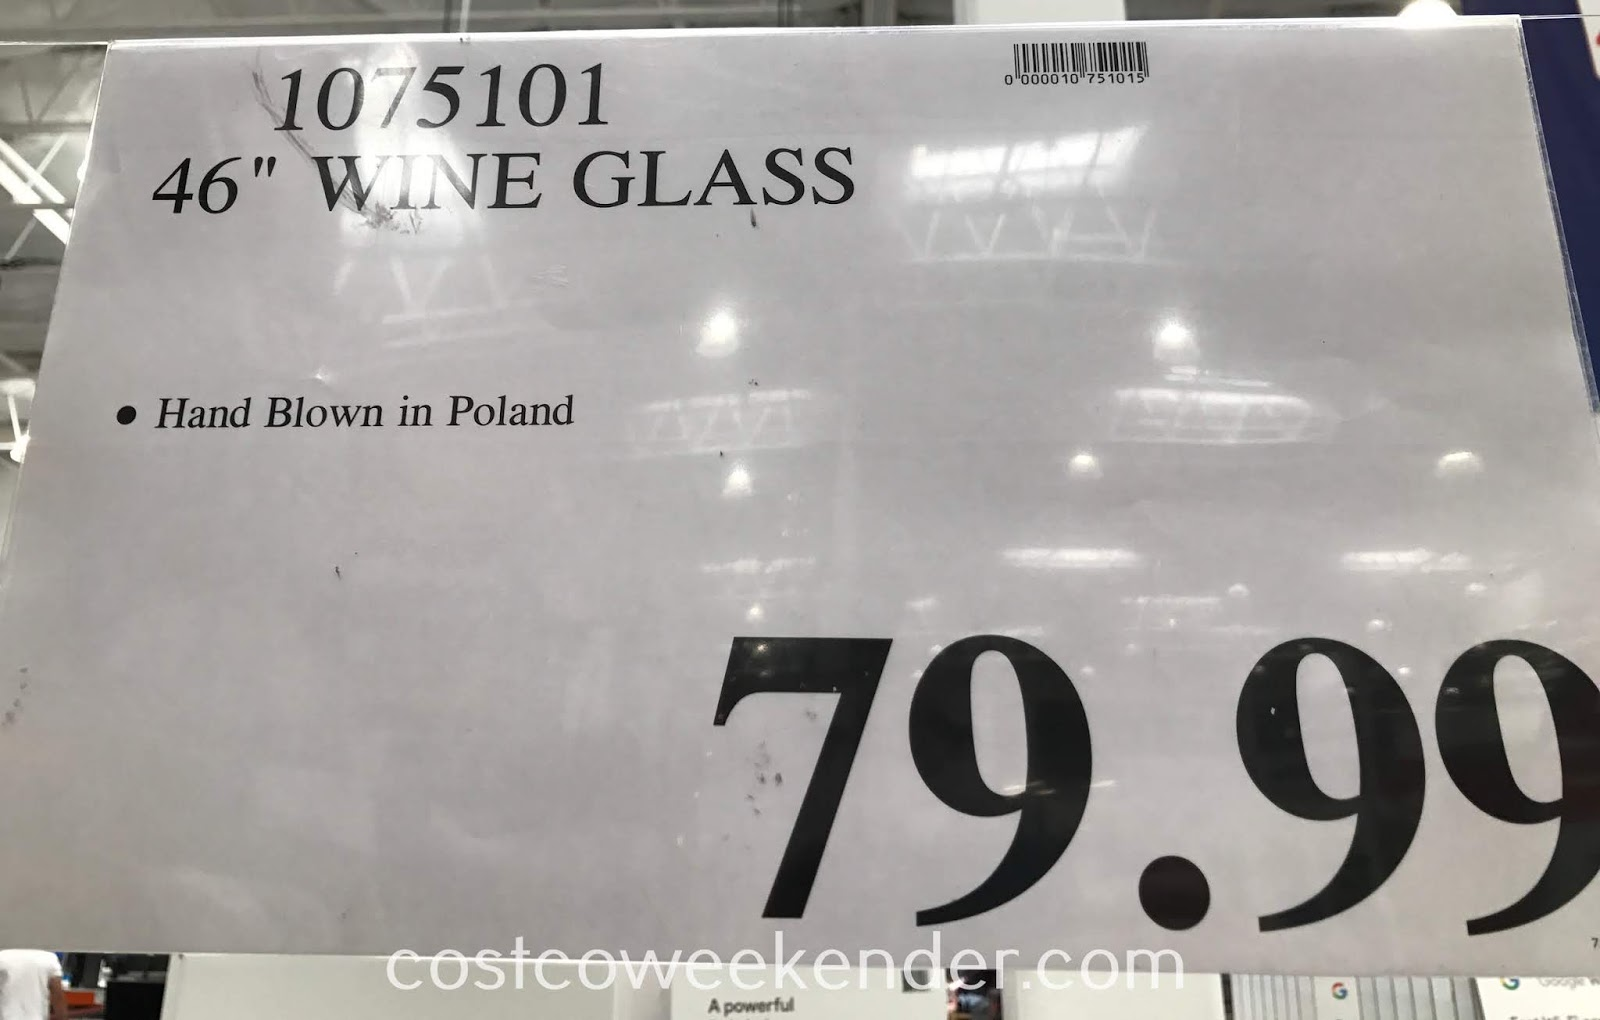 Costco 1075101 - Deal for the 46in Wine Glass at Costco